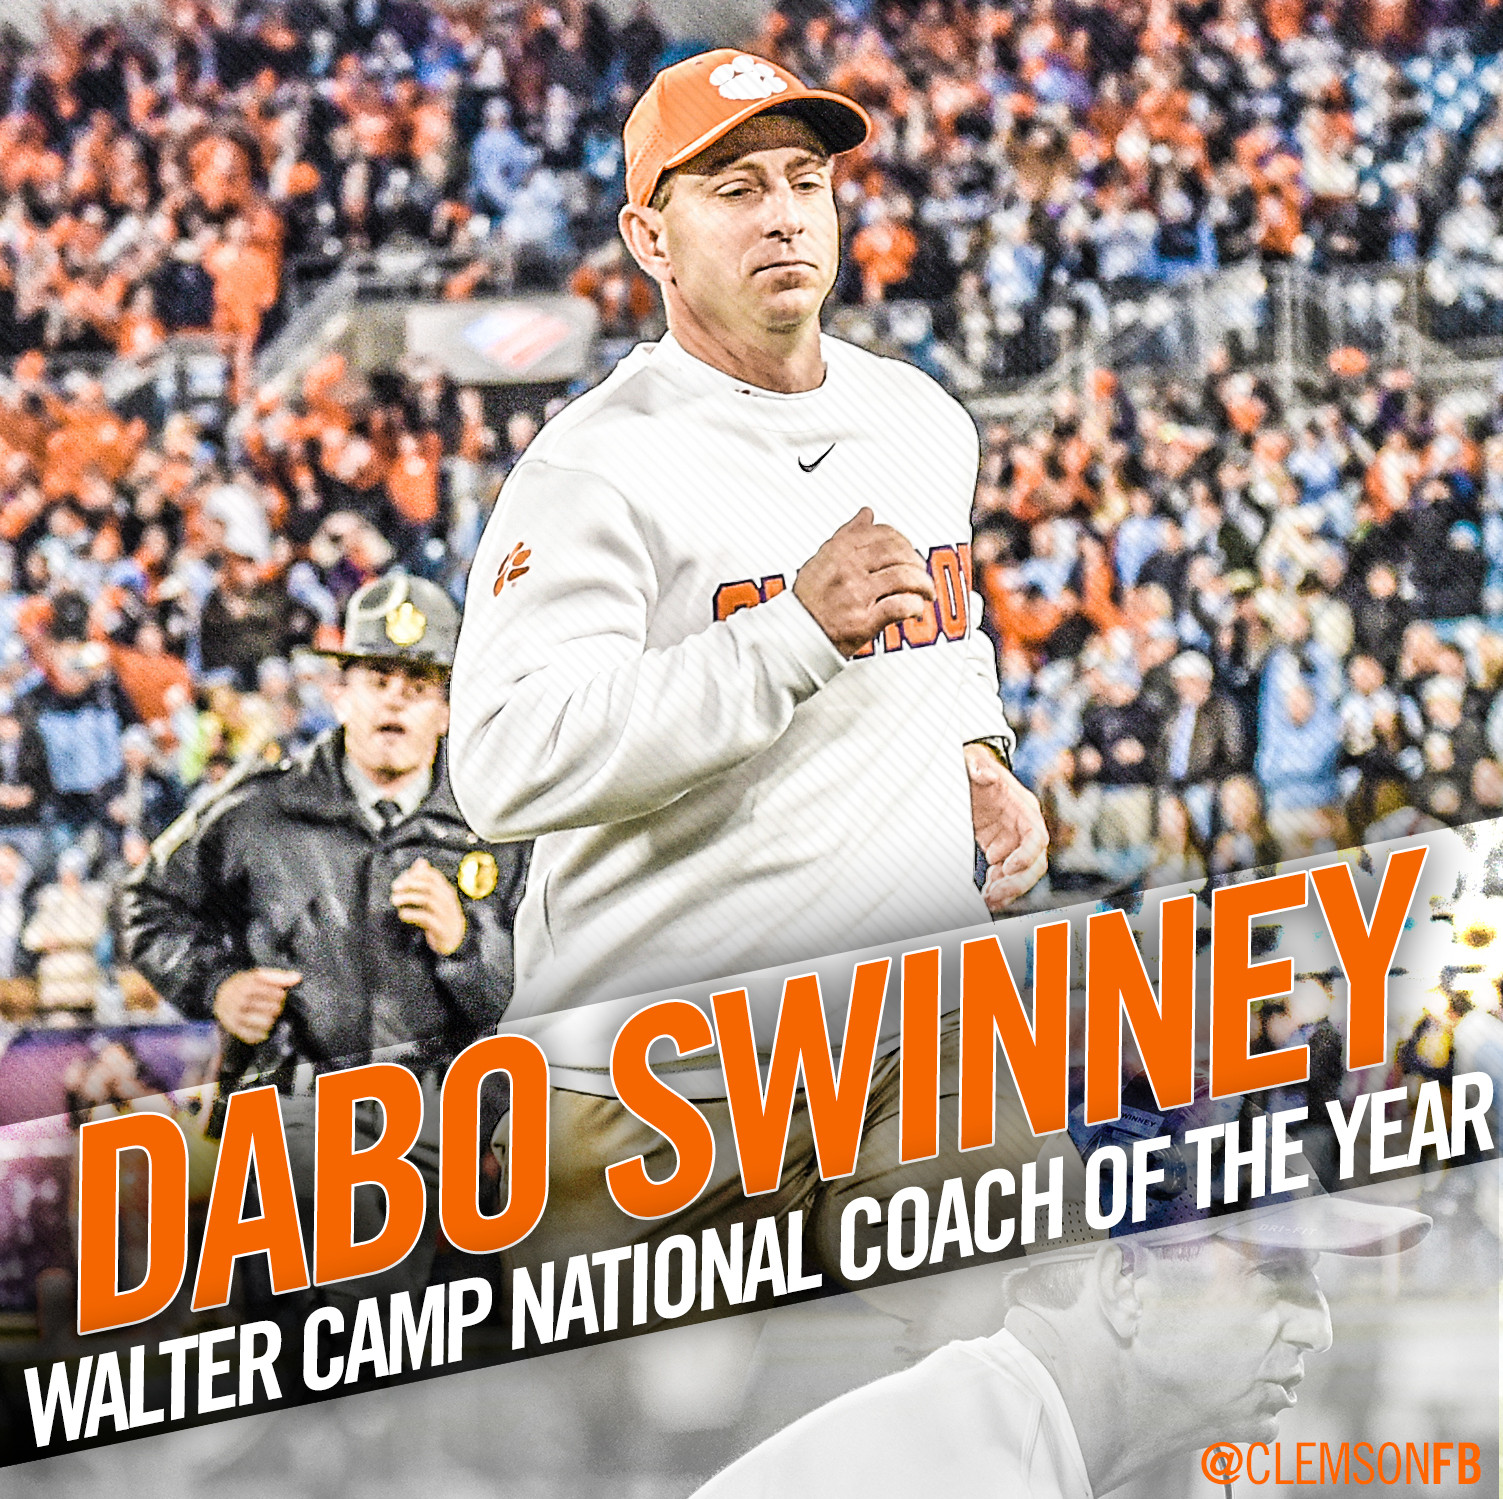 Swinney National Coach of the Year by Walter Camp Foundation